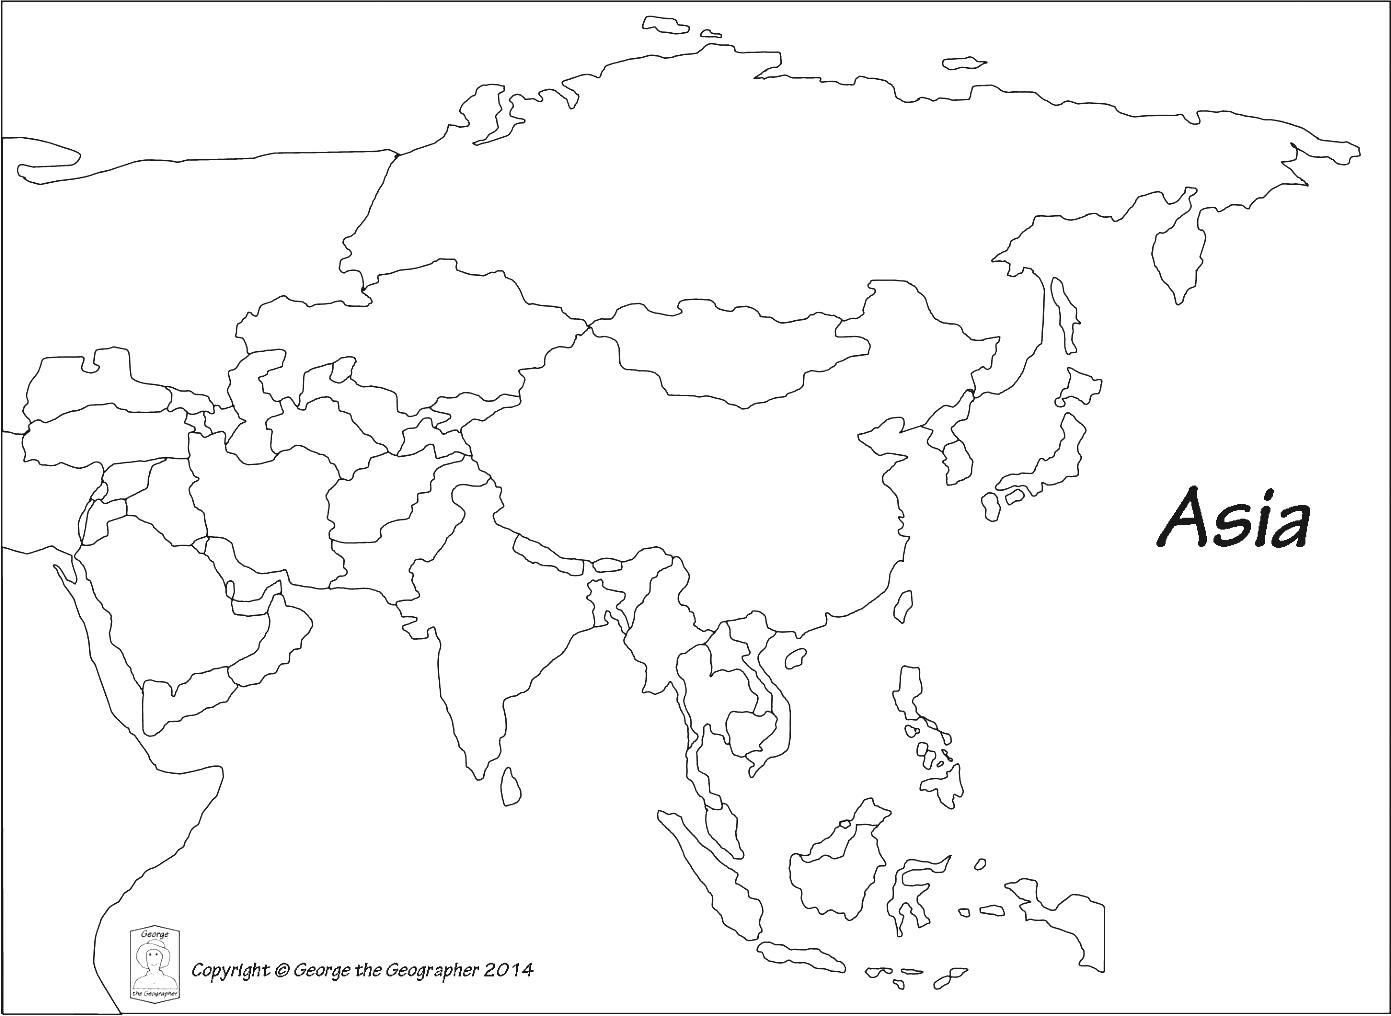 Outline Map Of Asia Political With Blank Outline Map Of Asia Political For Save